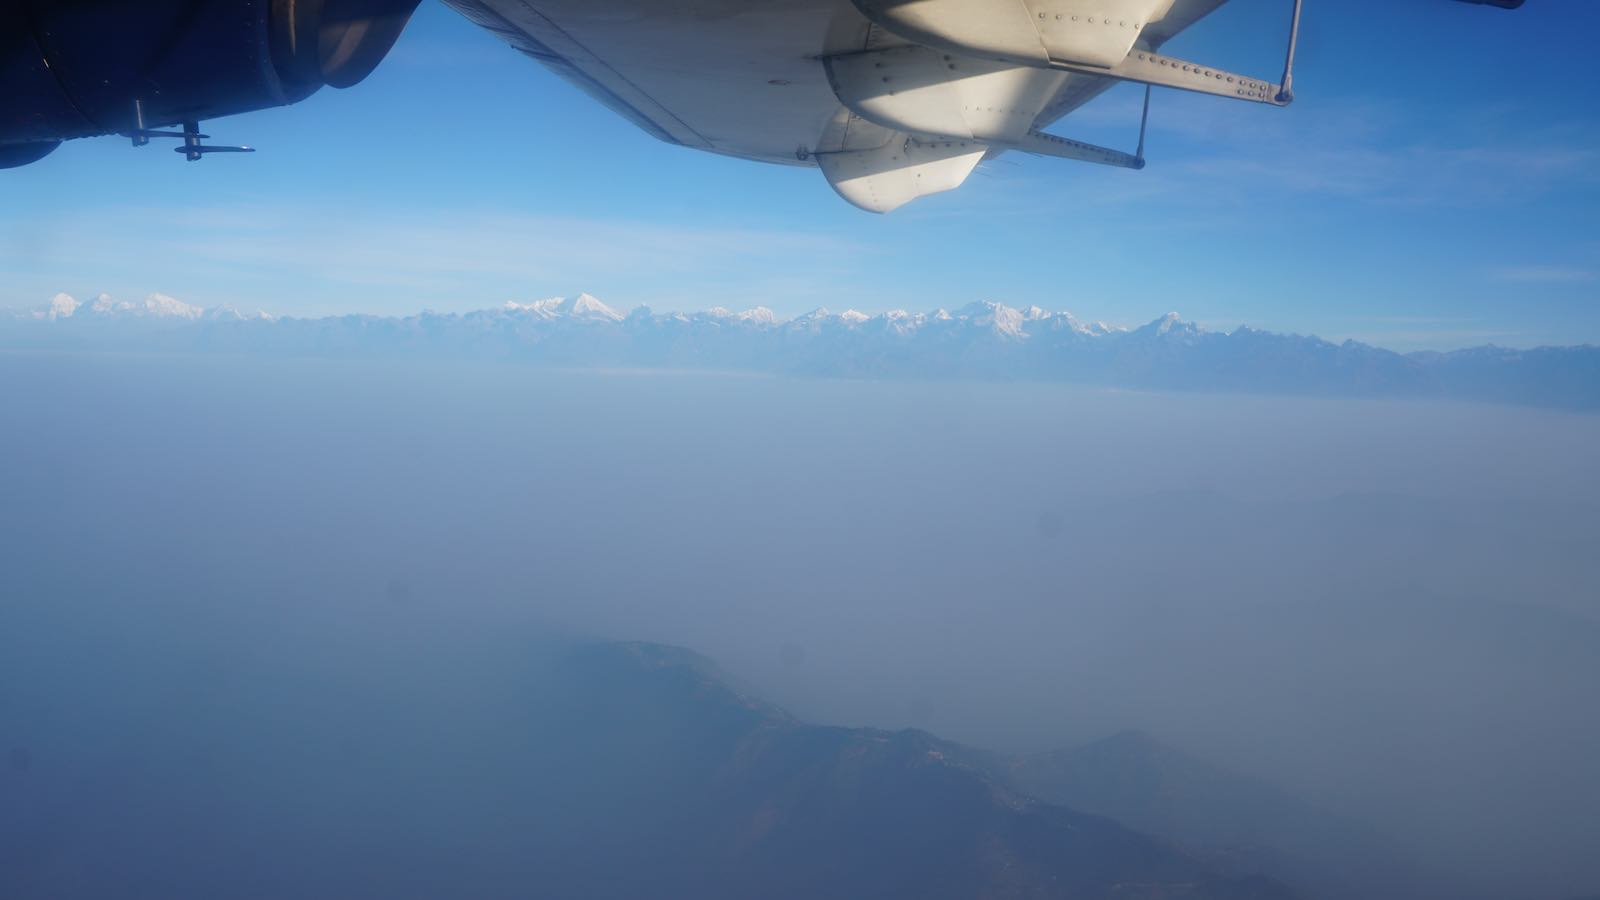 We flew out! And it was a perfectly clear day (until we got near Kathmandu) with an amazing view of the post prominent Himalayan peaks